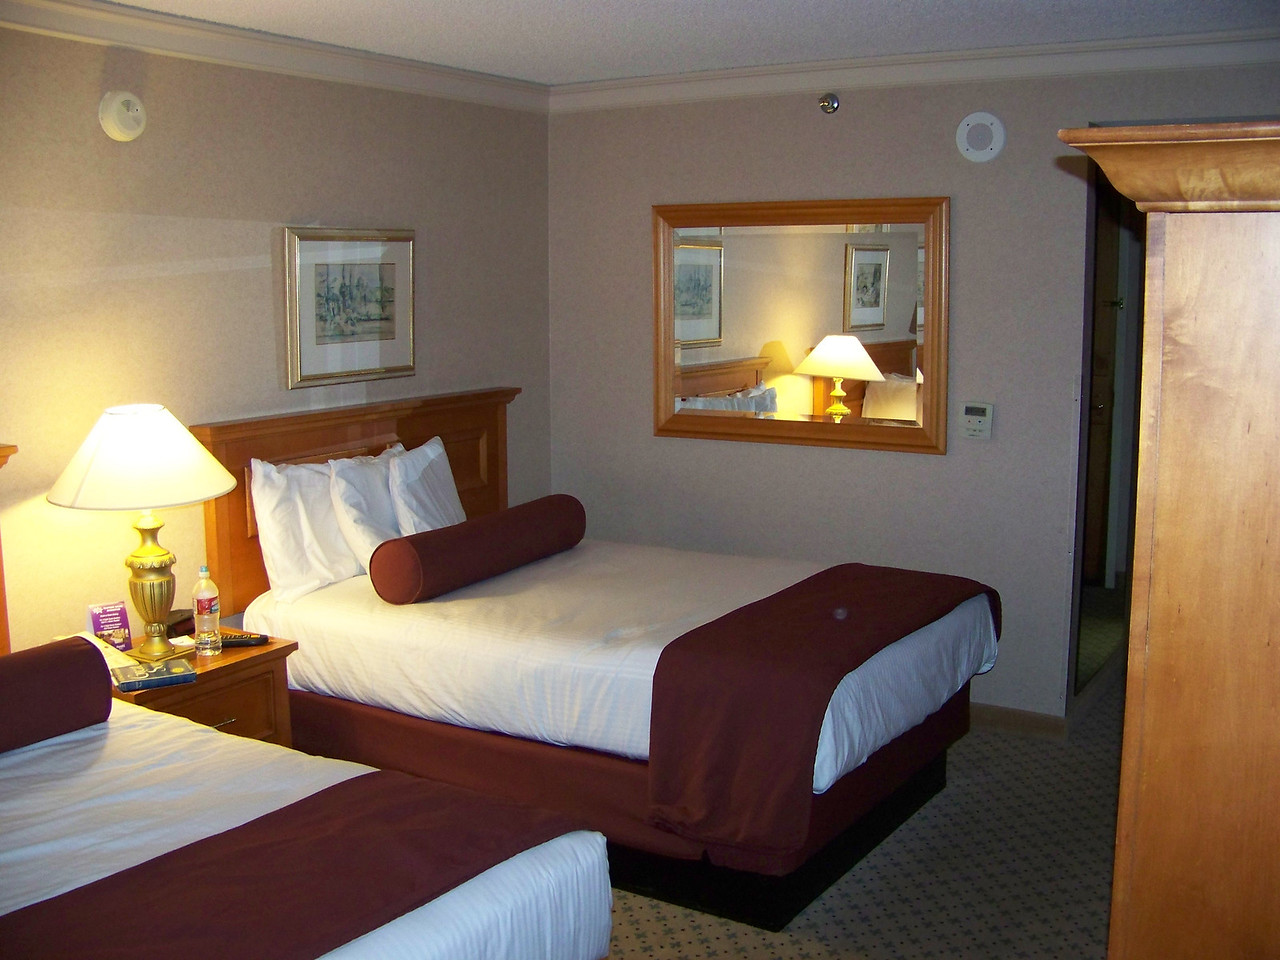 Another shot of my room at Harrah's.  I'm not sure why, but I always feel very comfortable here.  I definitely prefer the east tower over their west tower!<br /> [Reno]